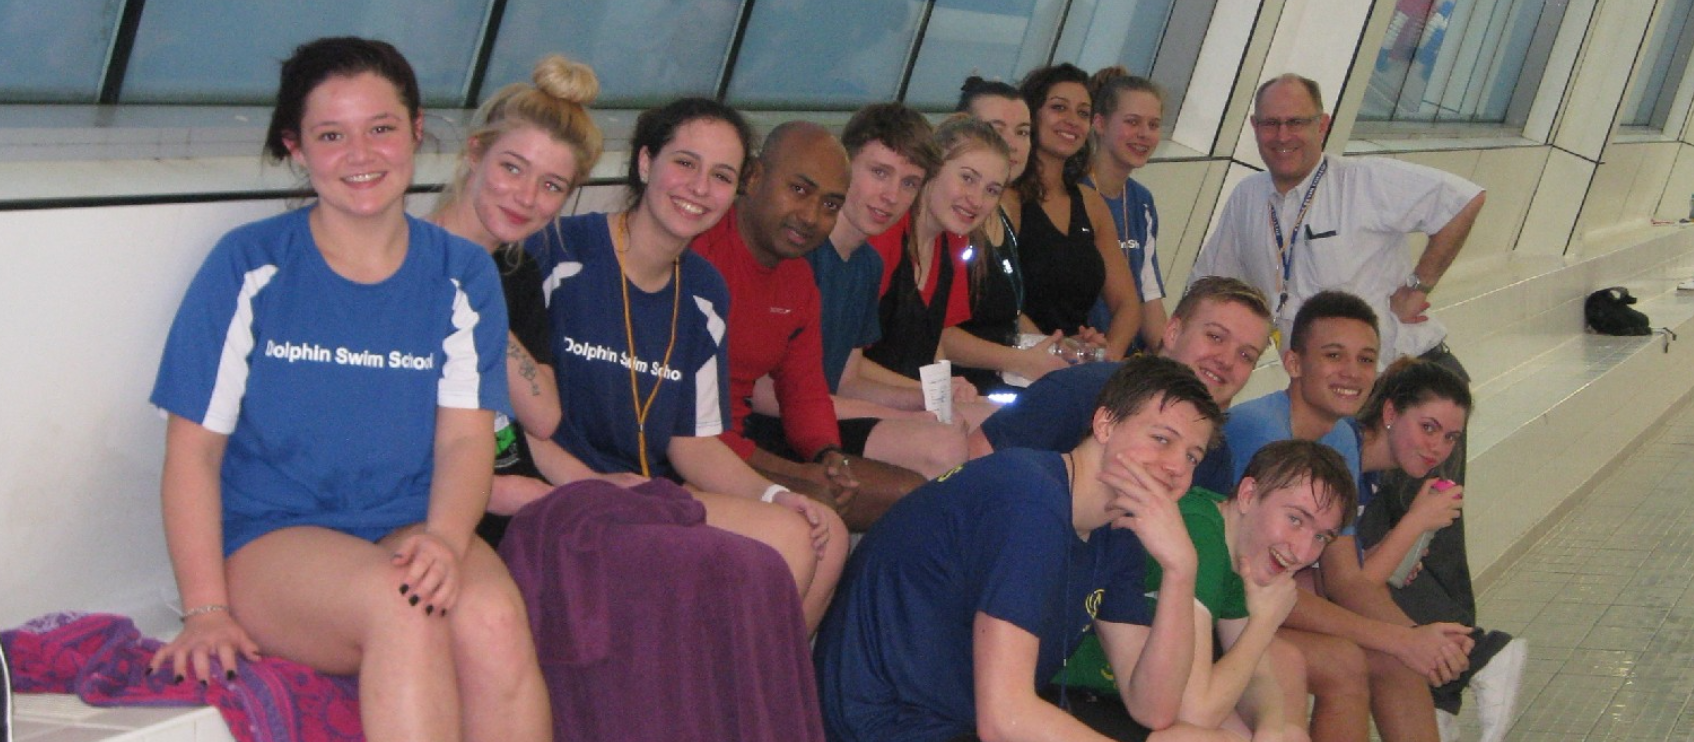 Steve Baker (Tutor) with successful candidates after the Award in Swimming Teaching, February 2016